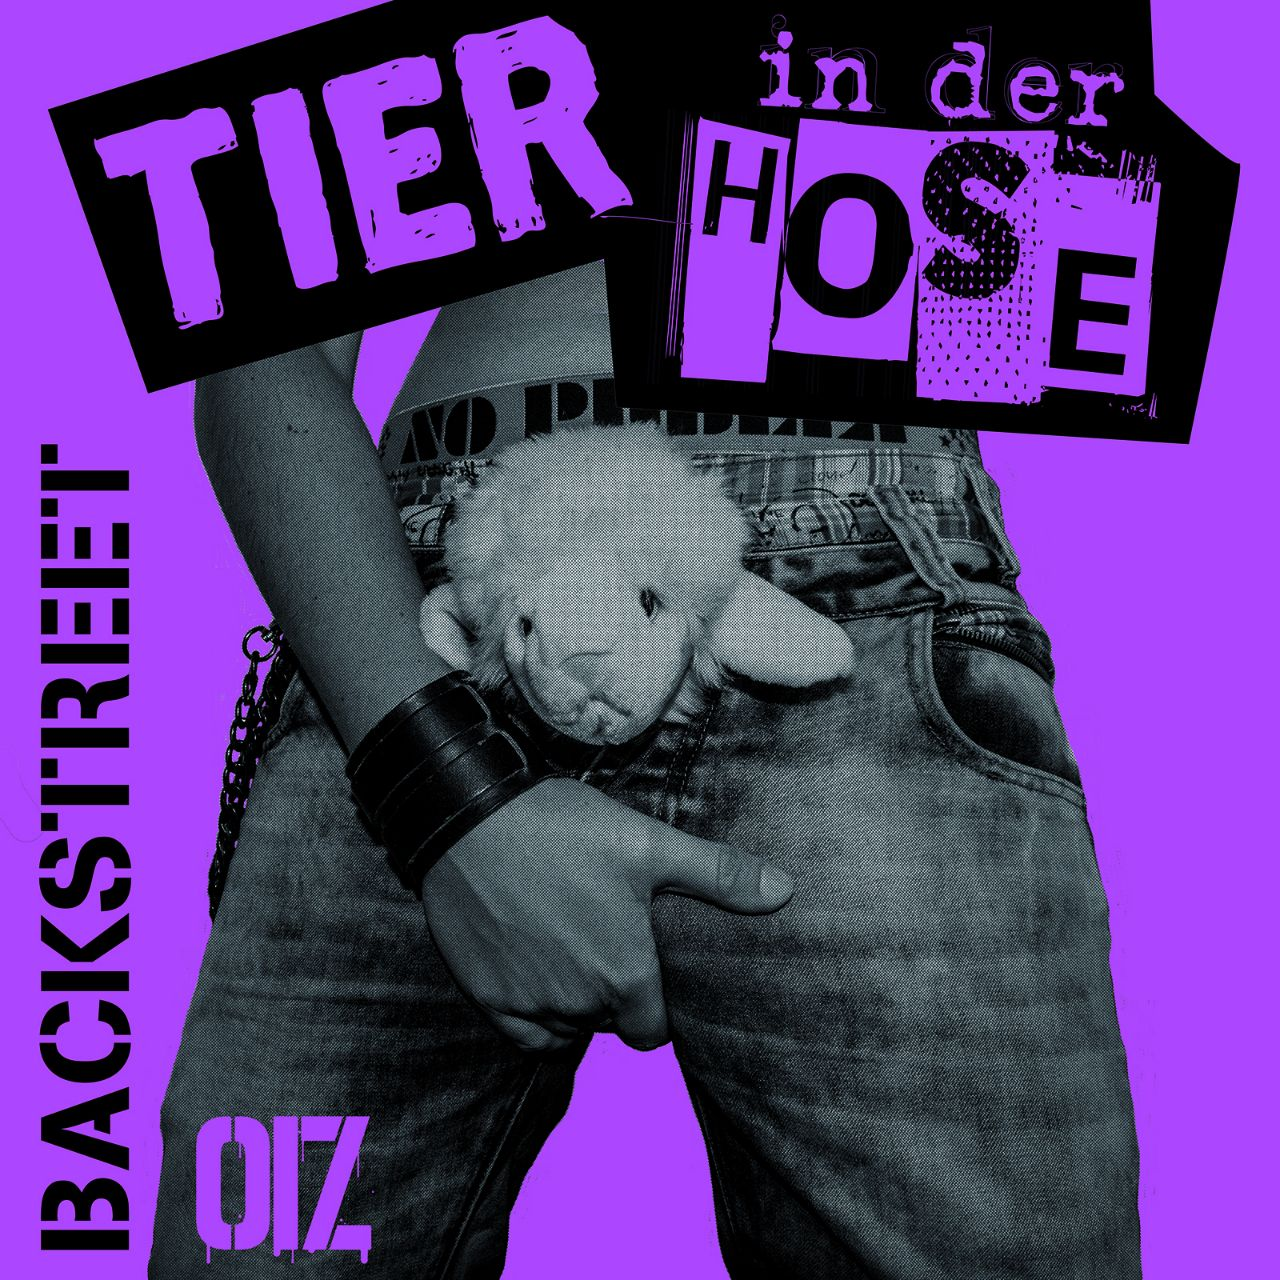 Backstreet Oiz - Tier in der Hose Album Cover